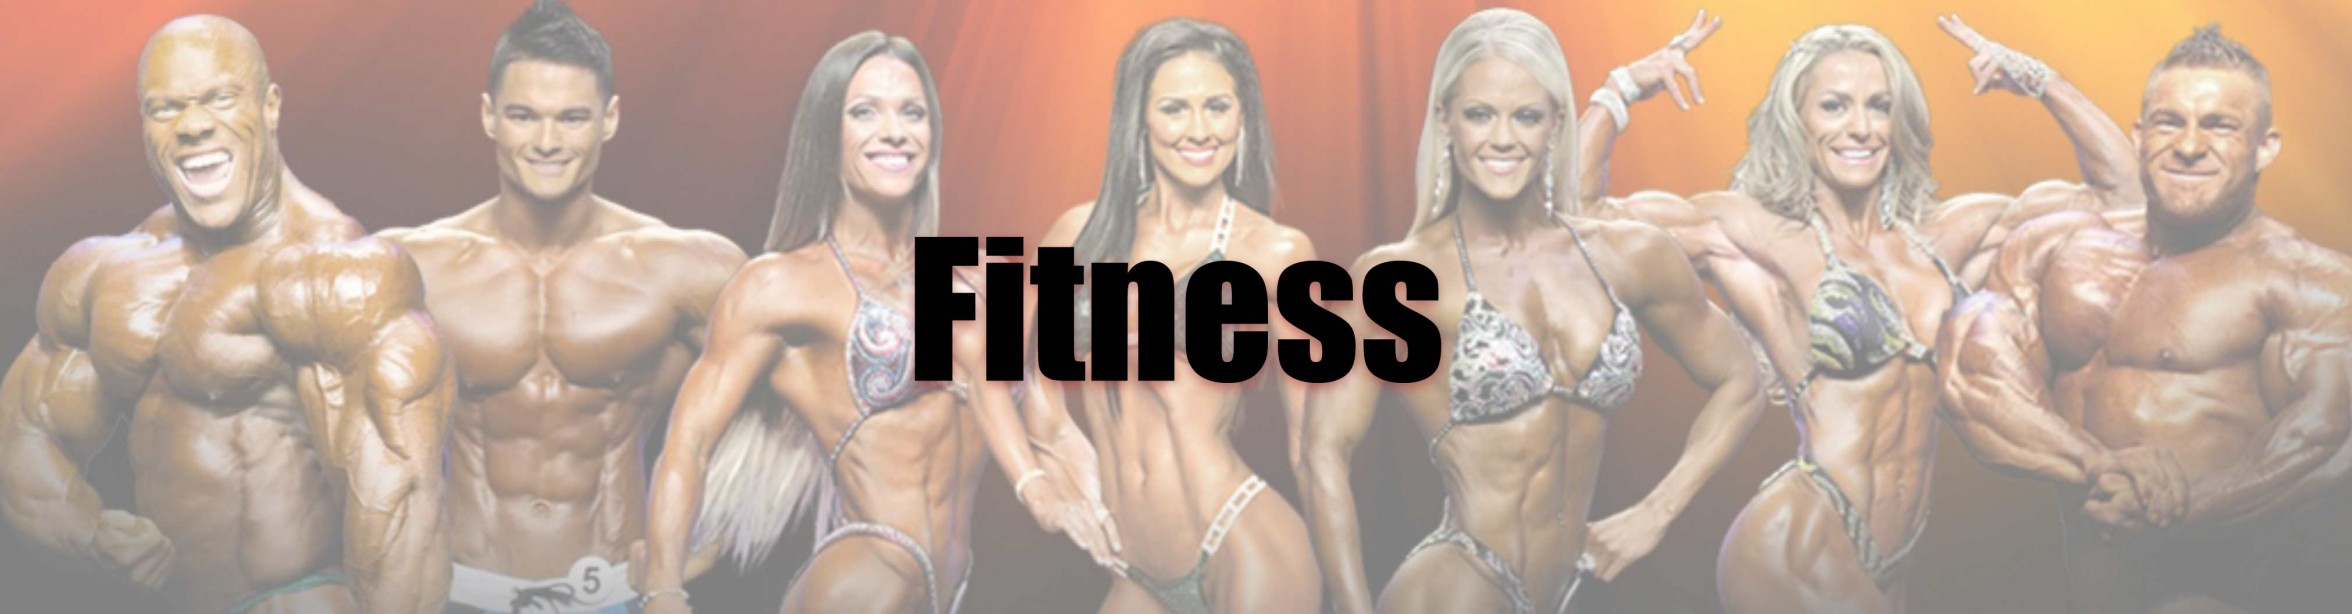 2015 Fitness Olympia Call Out Report